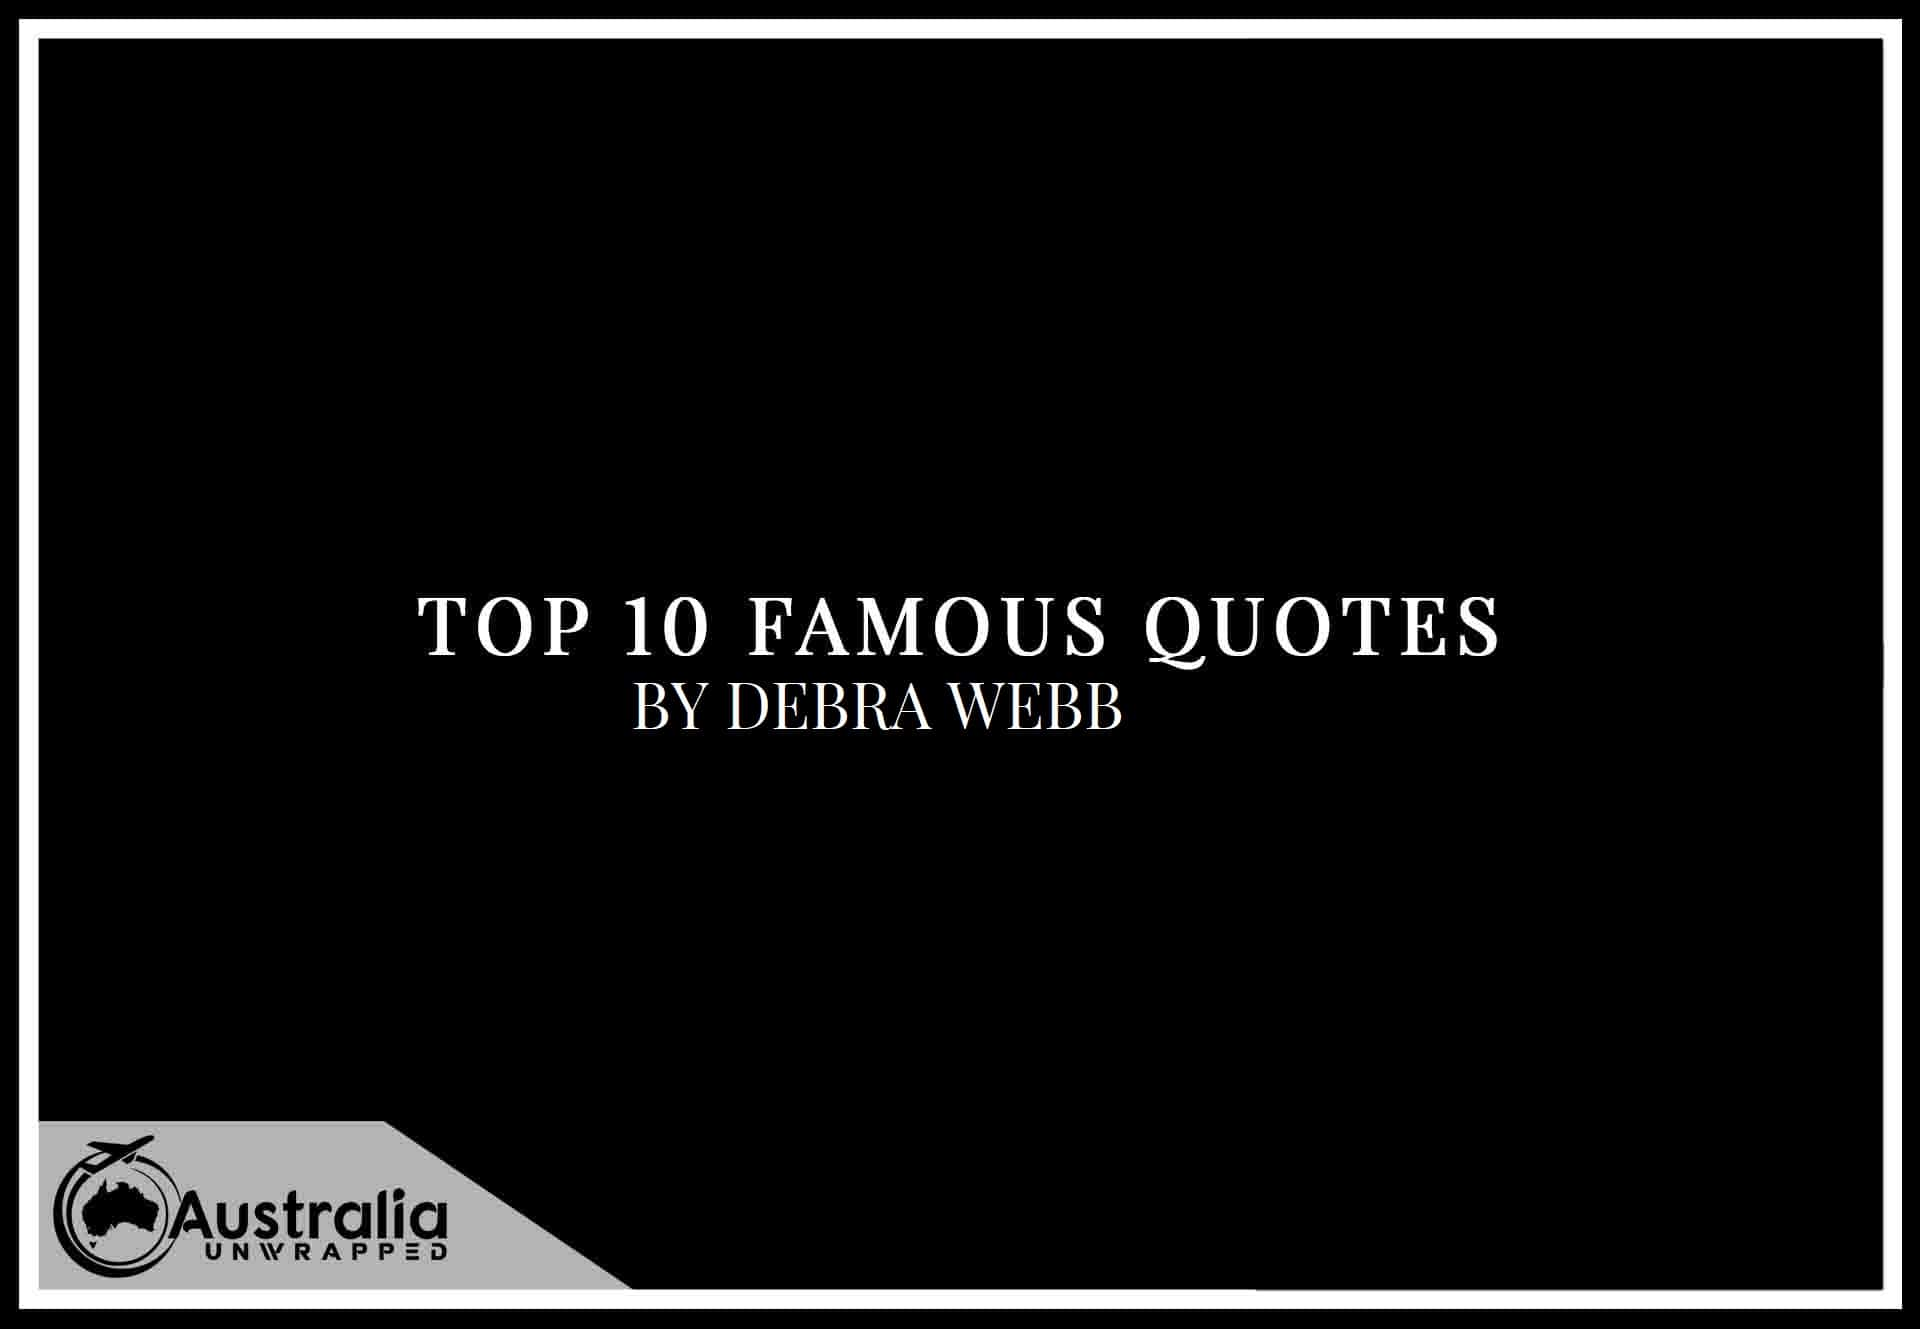 Top 10 Famous Quotes by Author Debra Webb